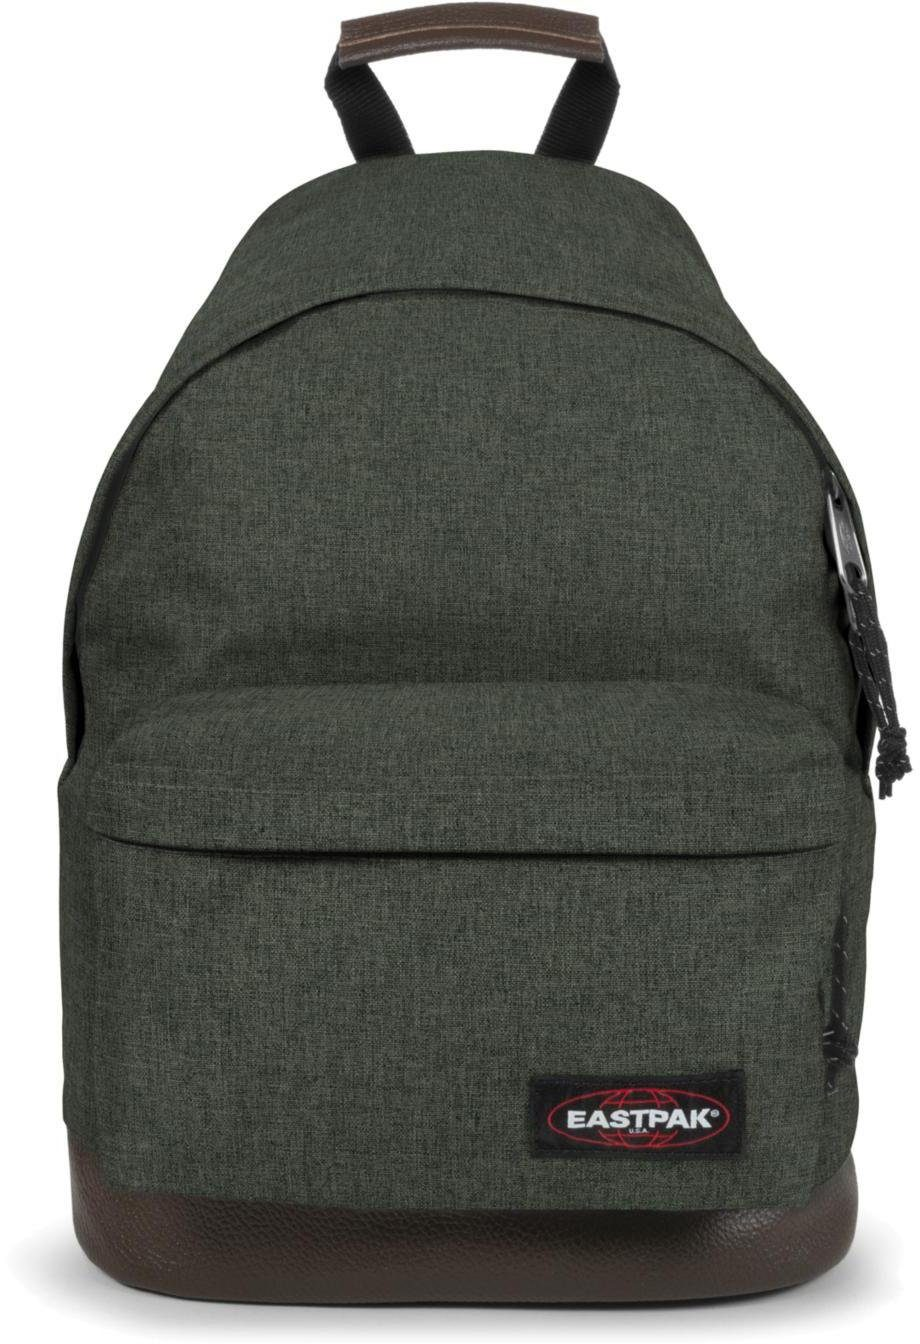 Eastpak Rucksack, »WYOMING crafty khaki«